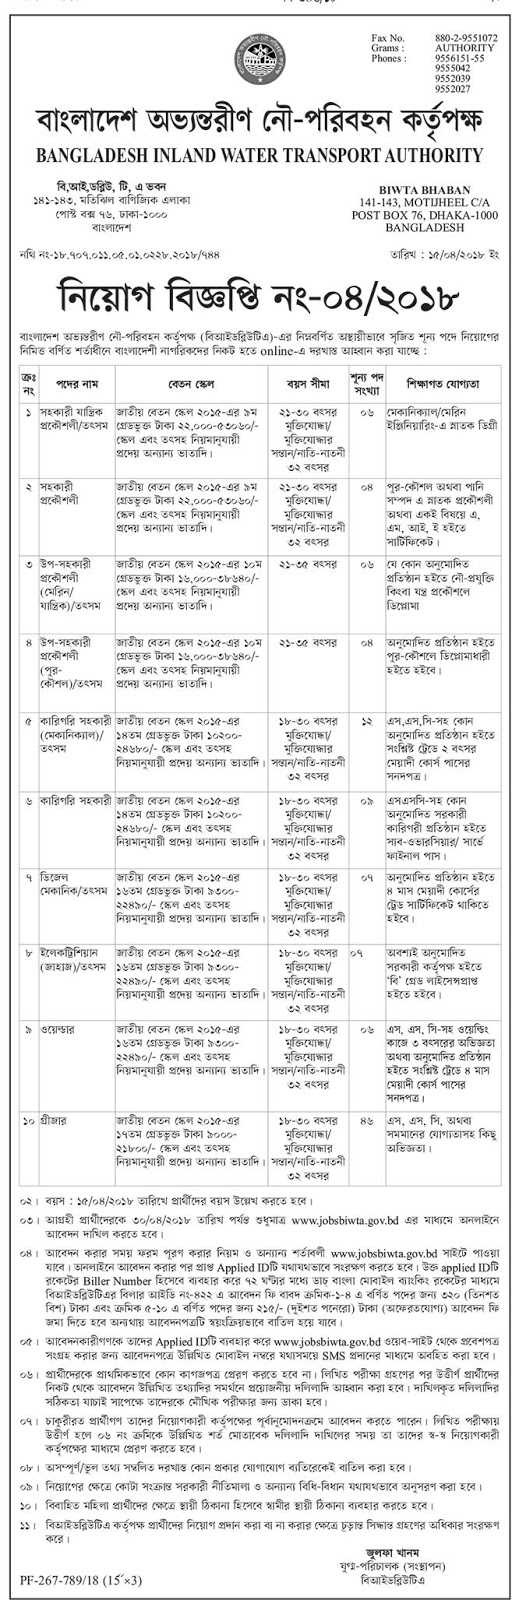 BIWTA - Bangladesh Inland Water Transport Authority Job Circular 2018